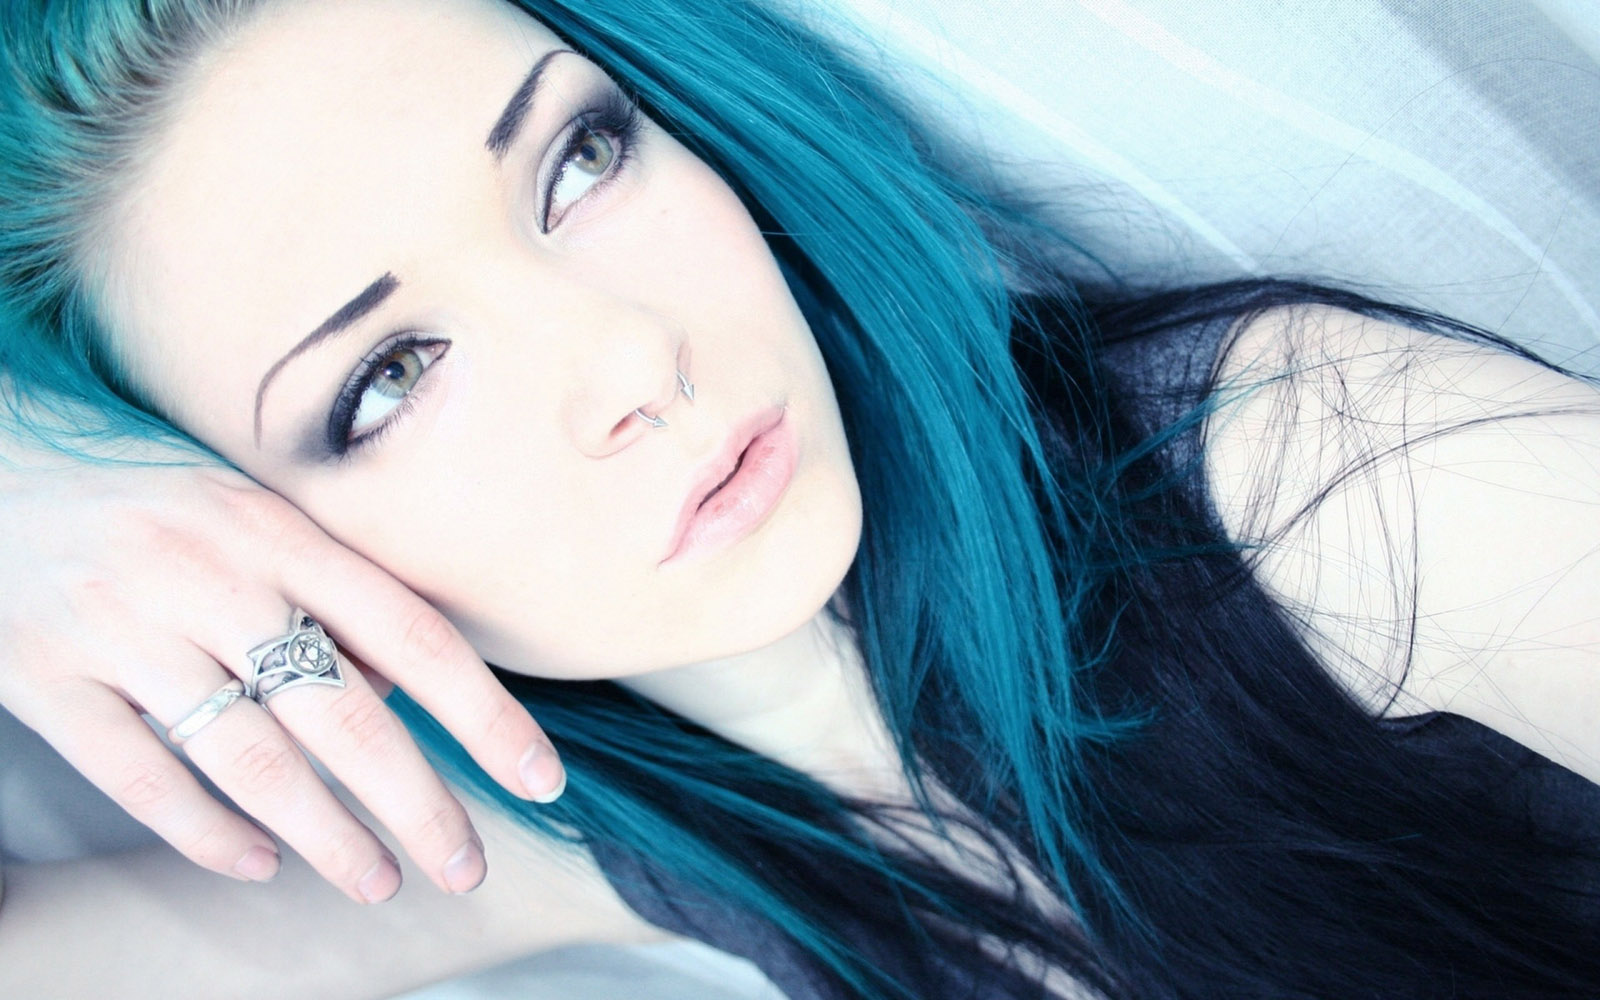 Emo girl girls beautiful style hd wallpaper 13jpg 1600x1000